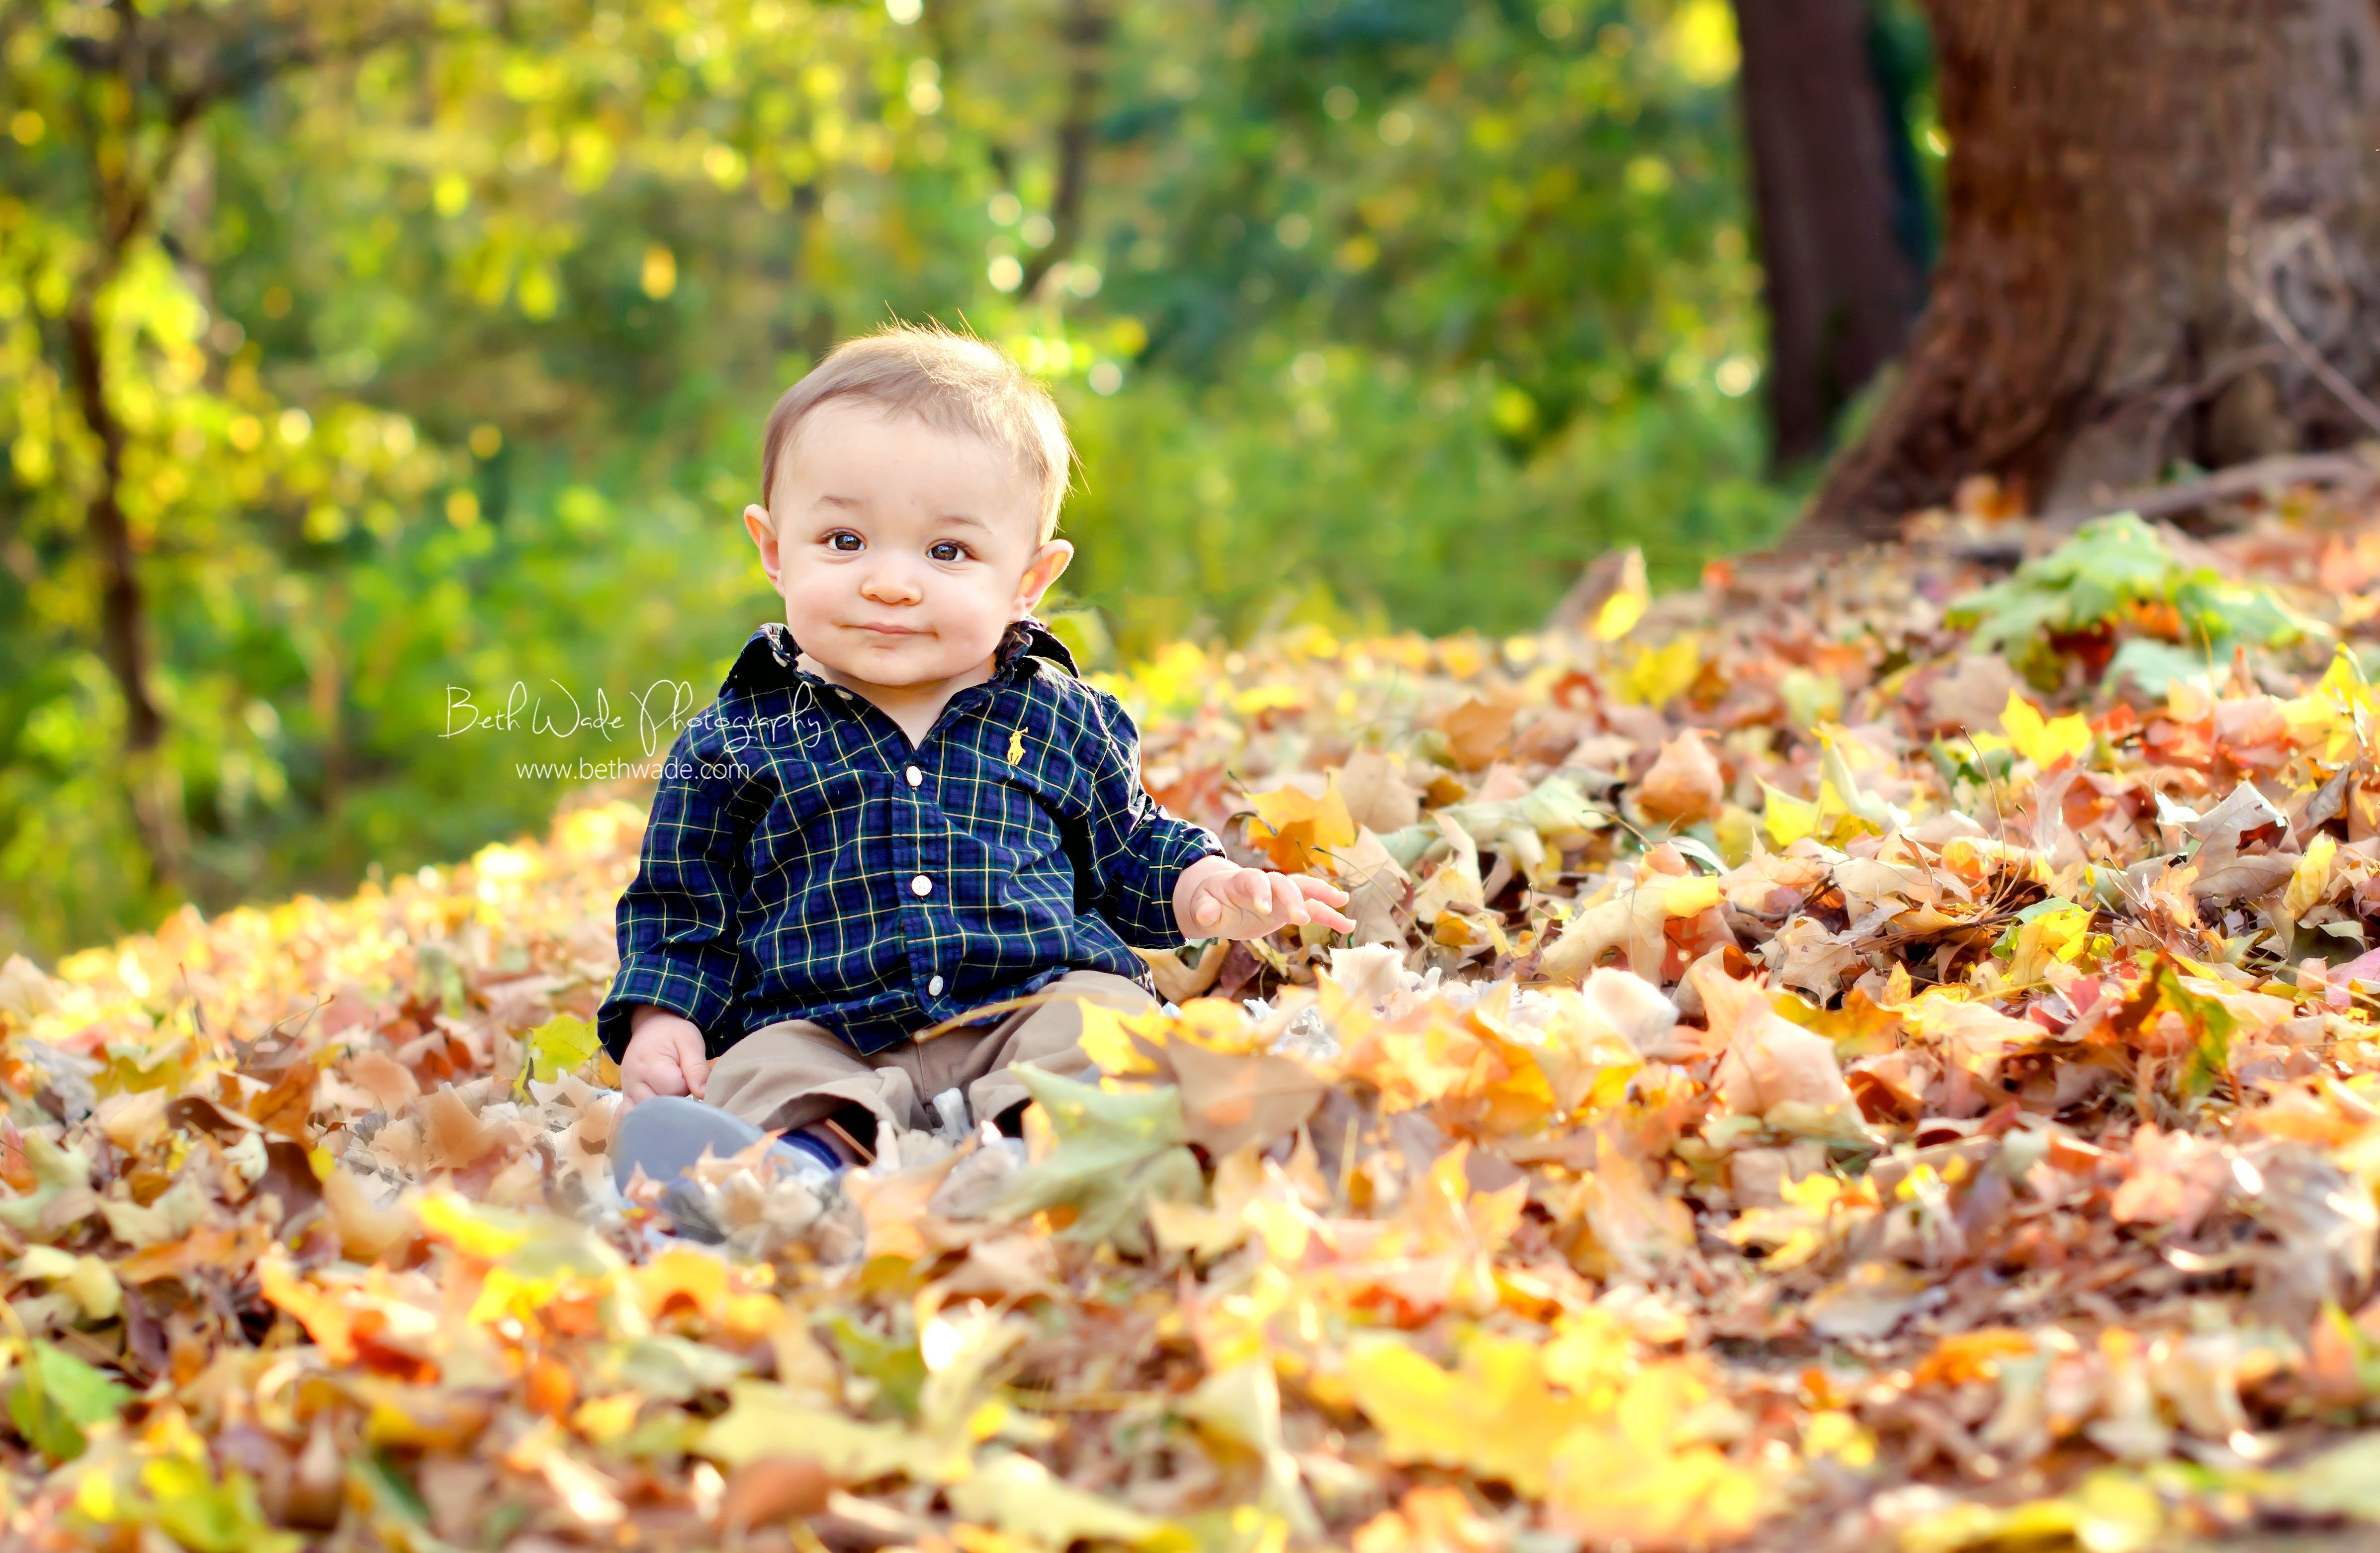 10 Great Fall Picture Ideas For Babies 7 month old baby boy charlotte baby photographer my photography 1 2020